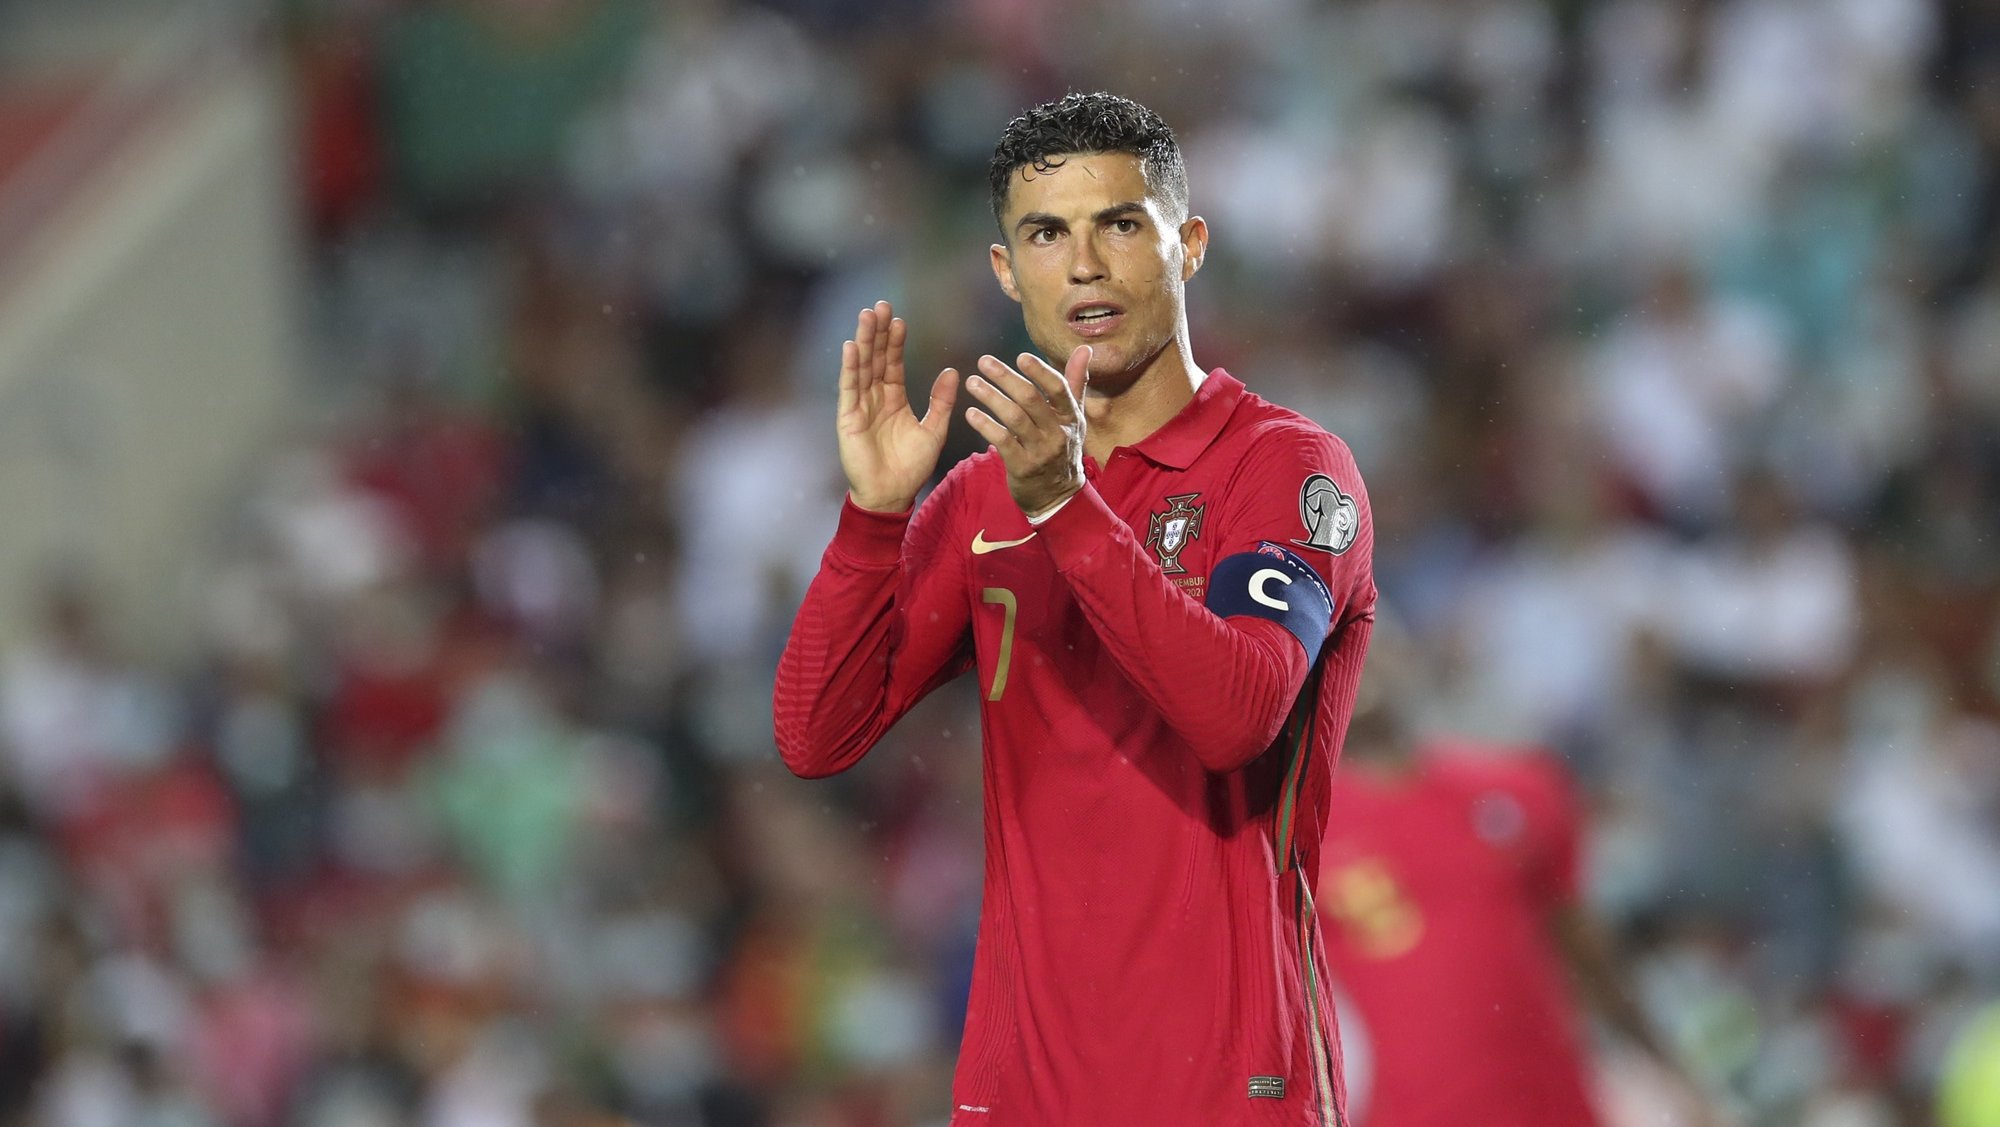 epa09520962 Cristiano Ronaldo of Portugal reacts during the FIFA World Cup 2022 qualifying group A soccer match at Algarve Stadium in Loule, Portugal, 12 October 2021.  EPA/ANTONIO COTRIM